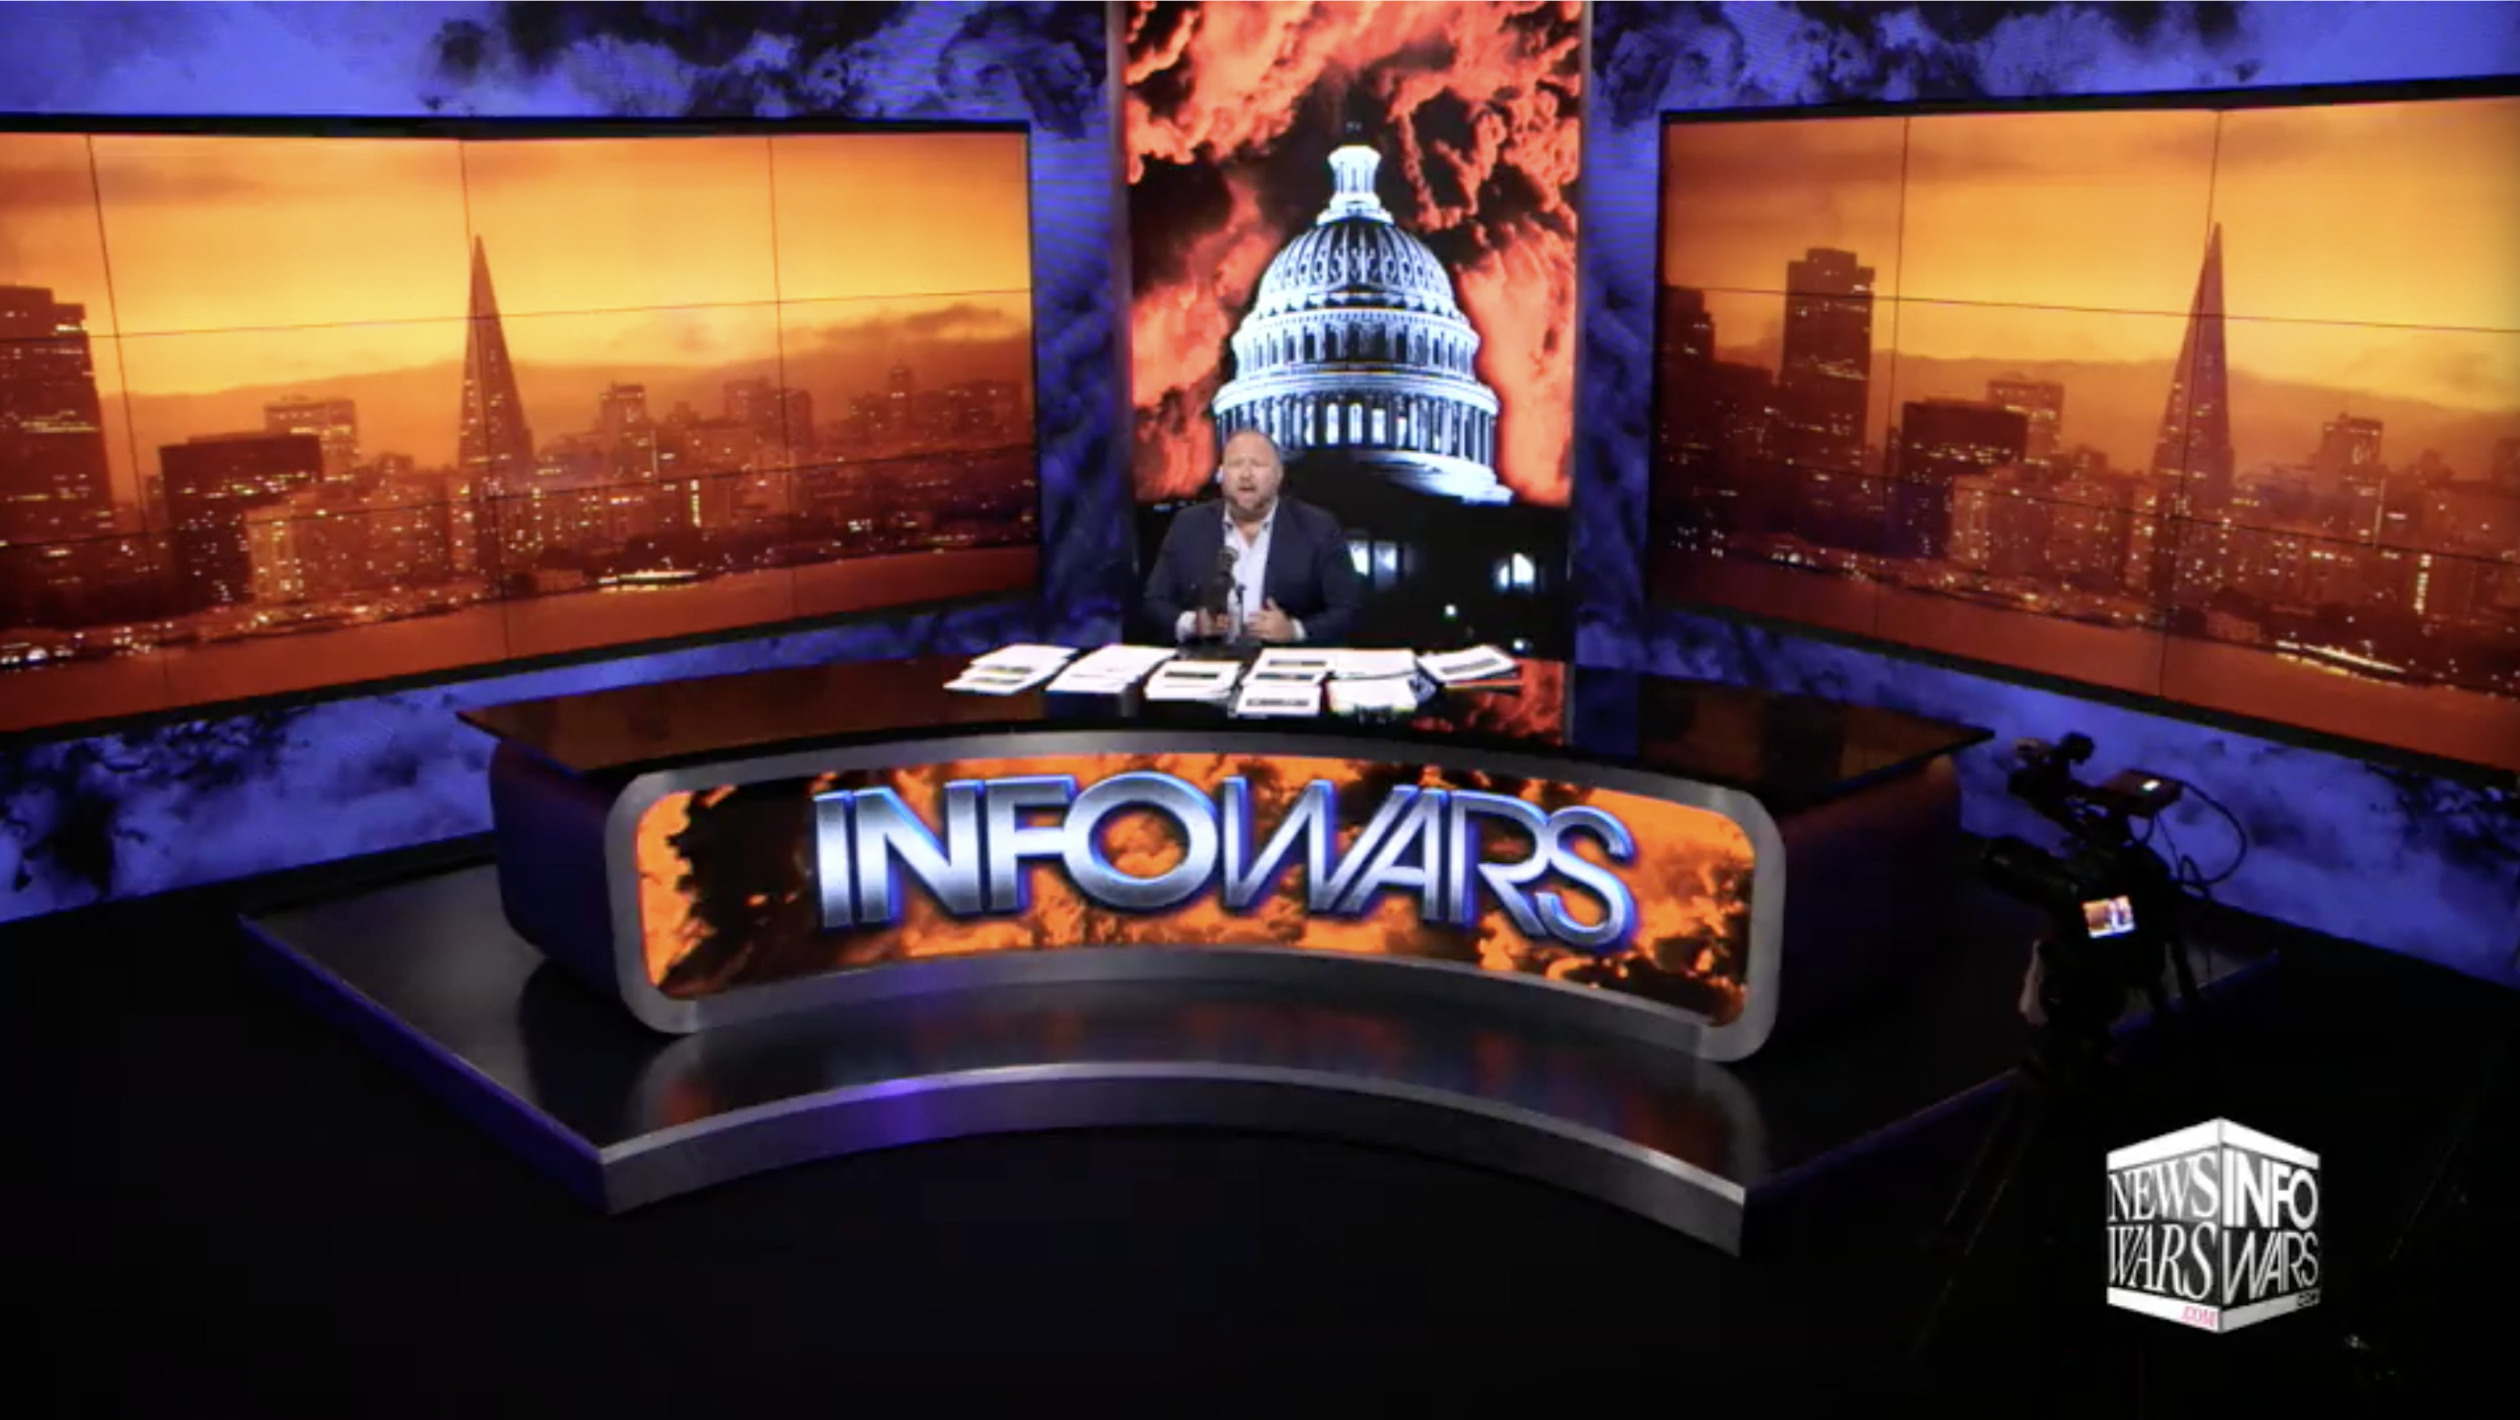 Alex Jones Infowars Studio San Francisco California On Fire EXZM September 14th 2020